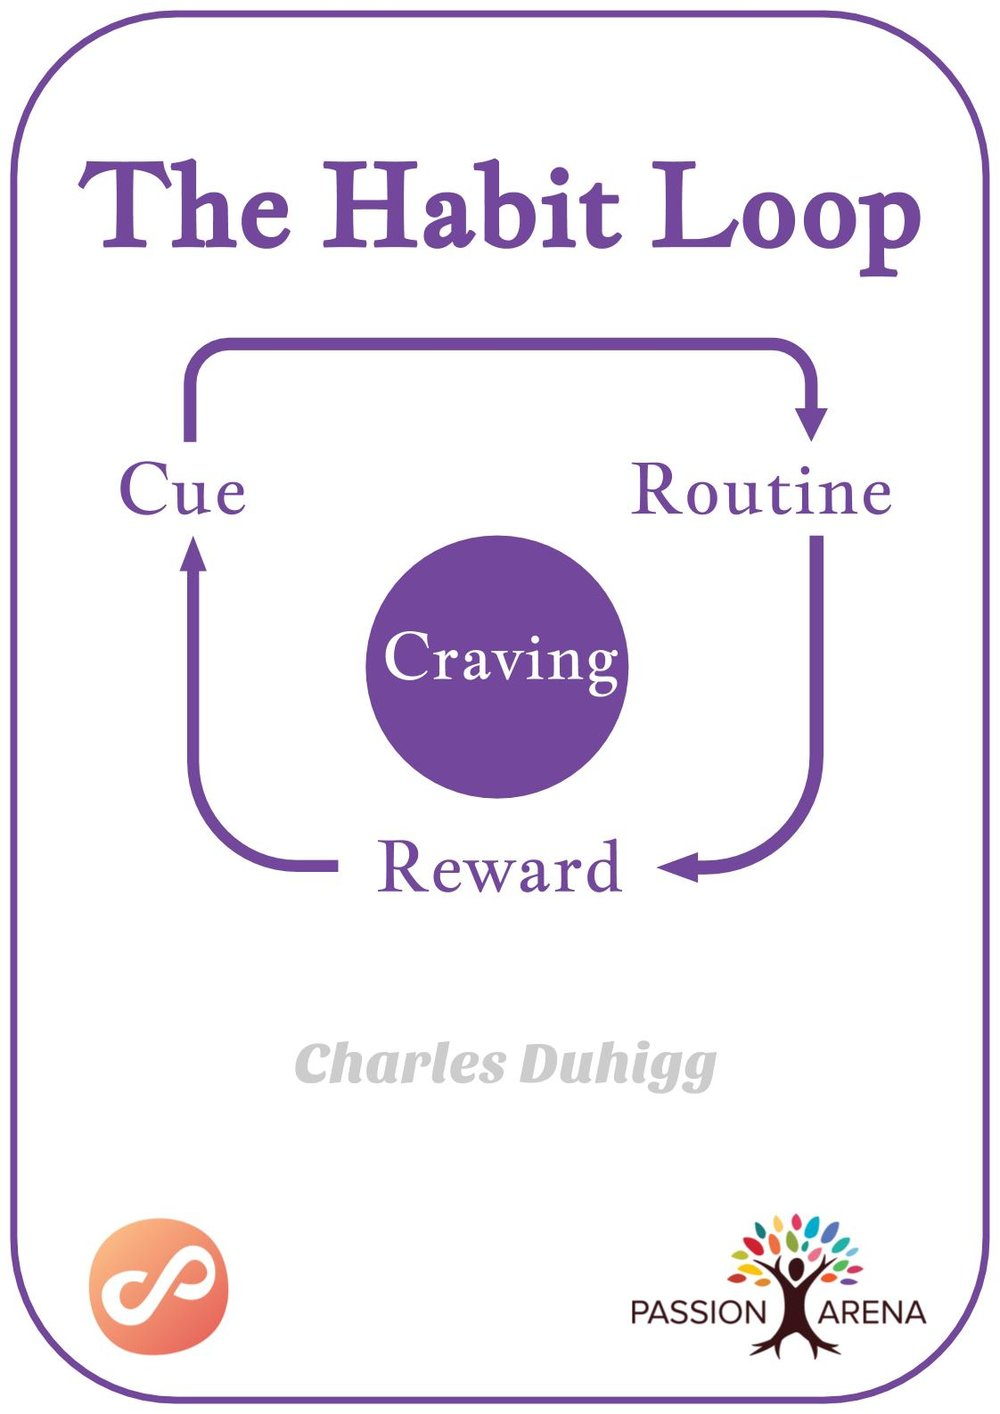 Intro-2-24. How can you change a bad habit?